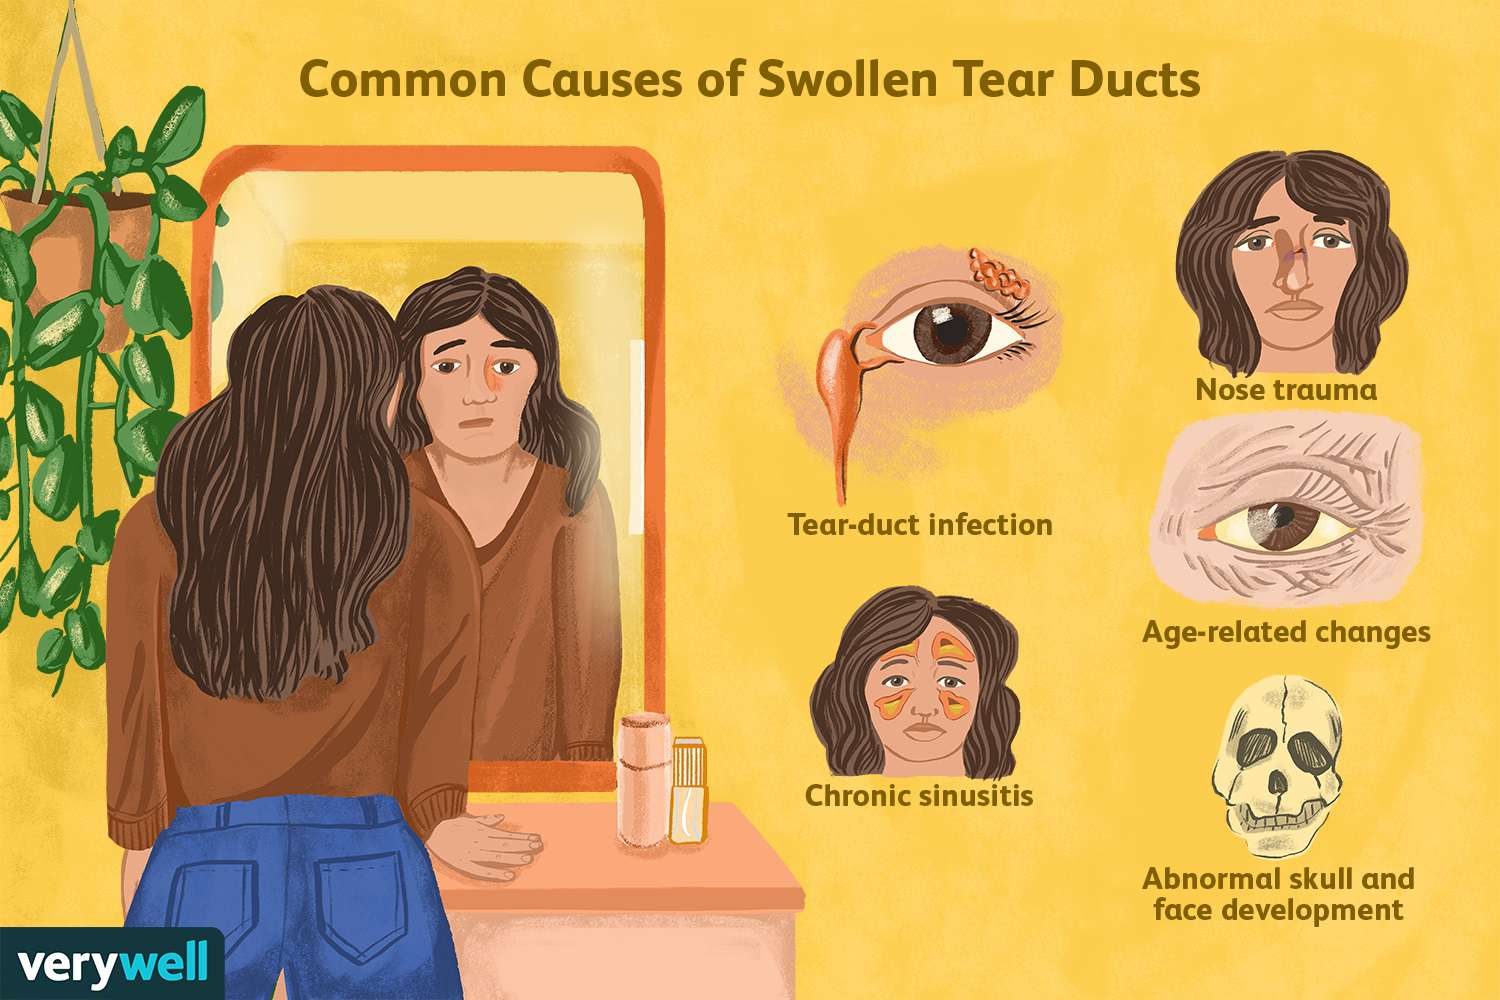 Common Causes of Swollen Tear Ducts